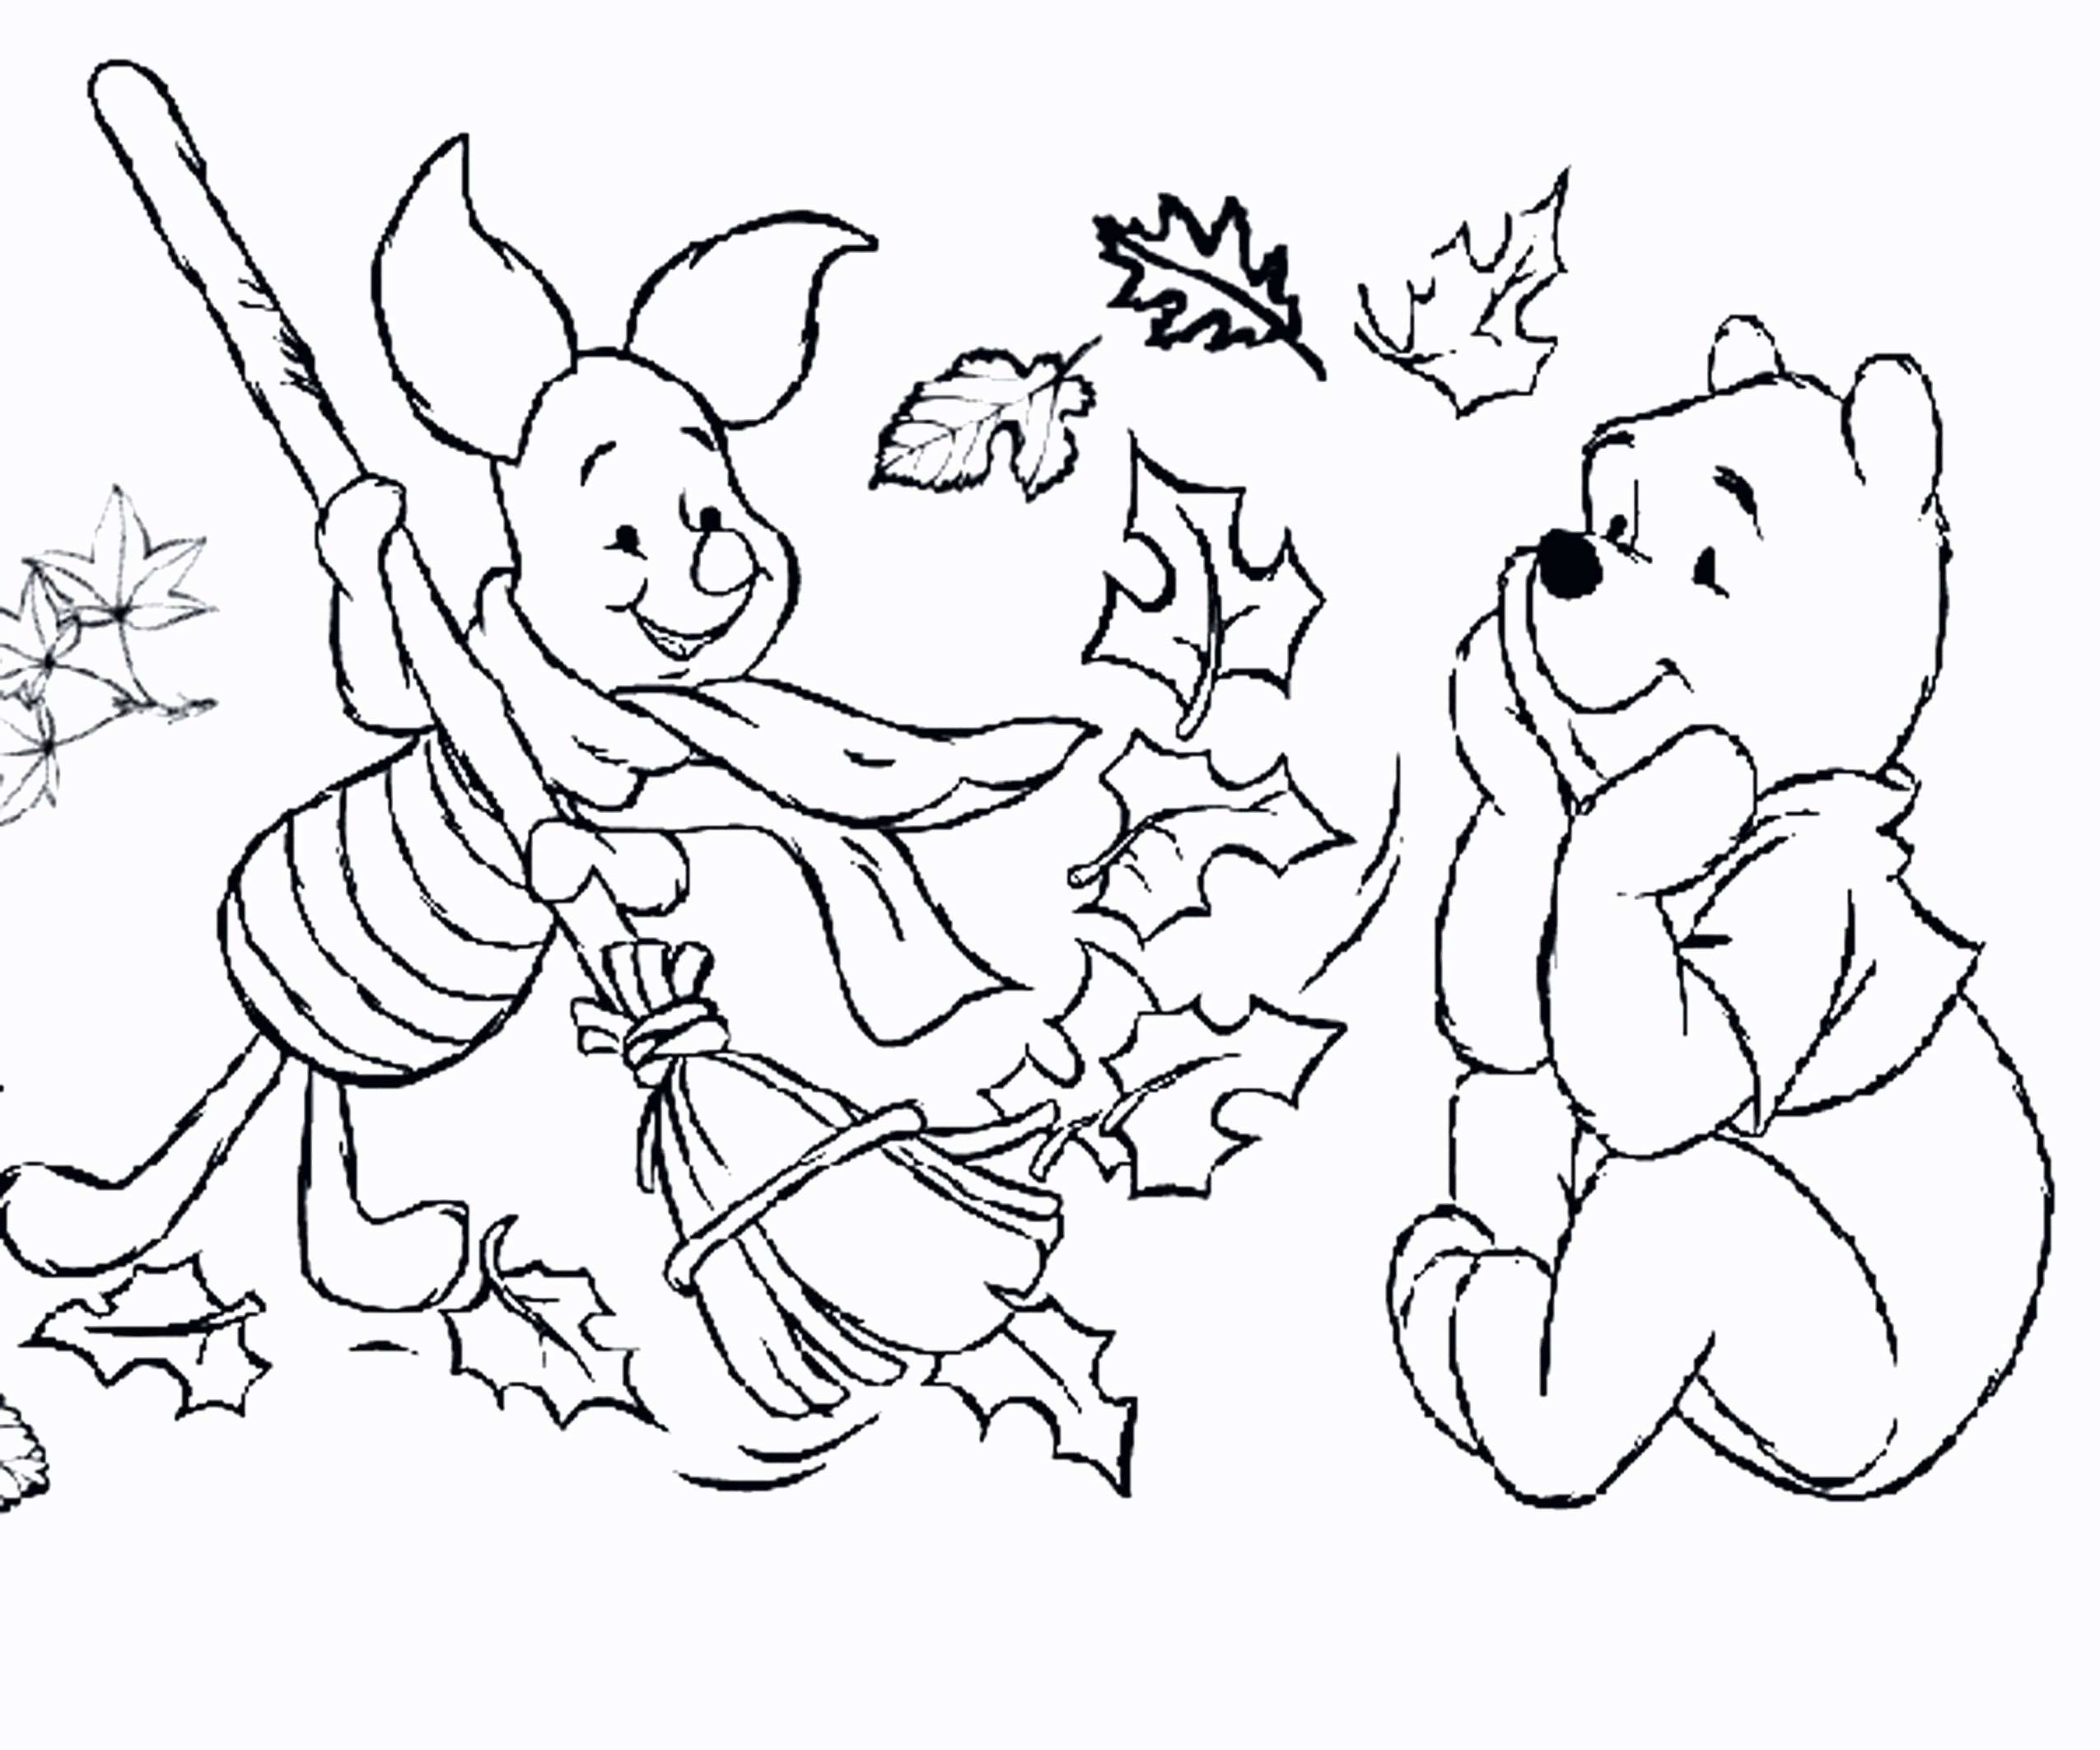 torah tots coloring pages Collection-Coloring Pages Showing Respect Lovely top 10 Coloring Pages 51 Inspirational Ideas for Coloring Pages 5-n